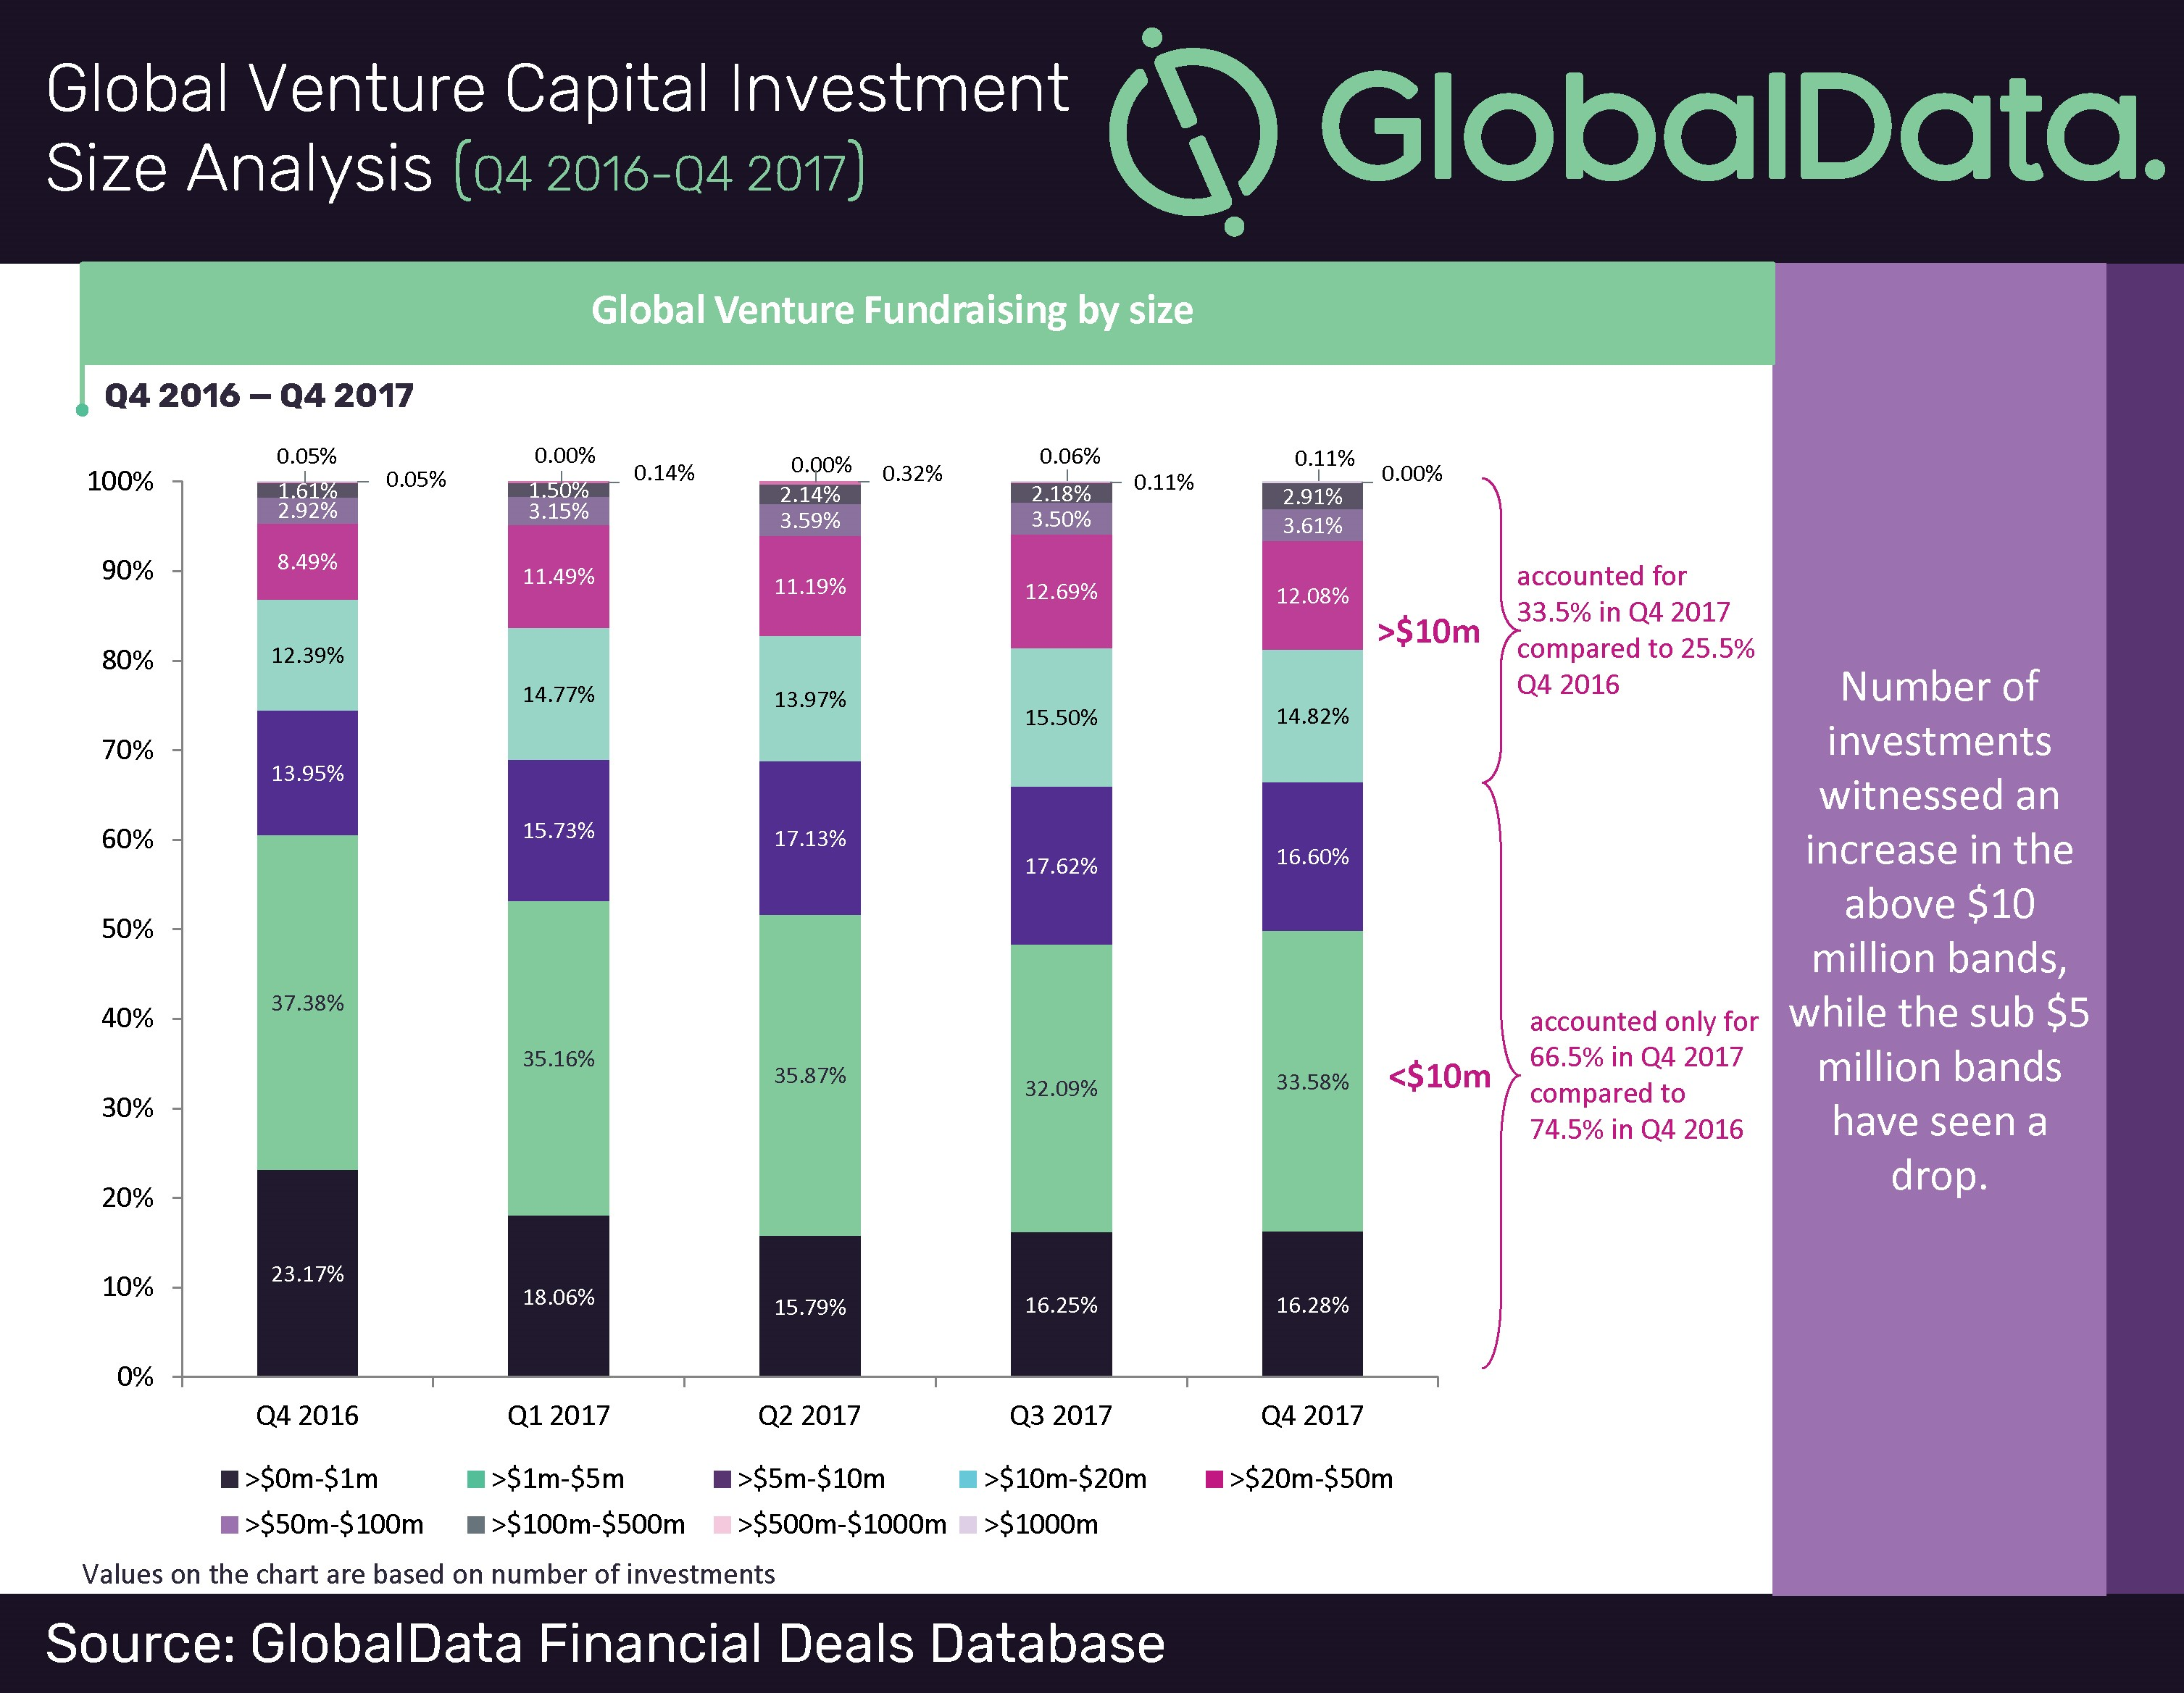 Higher value bands gain momentum in vc funding activity